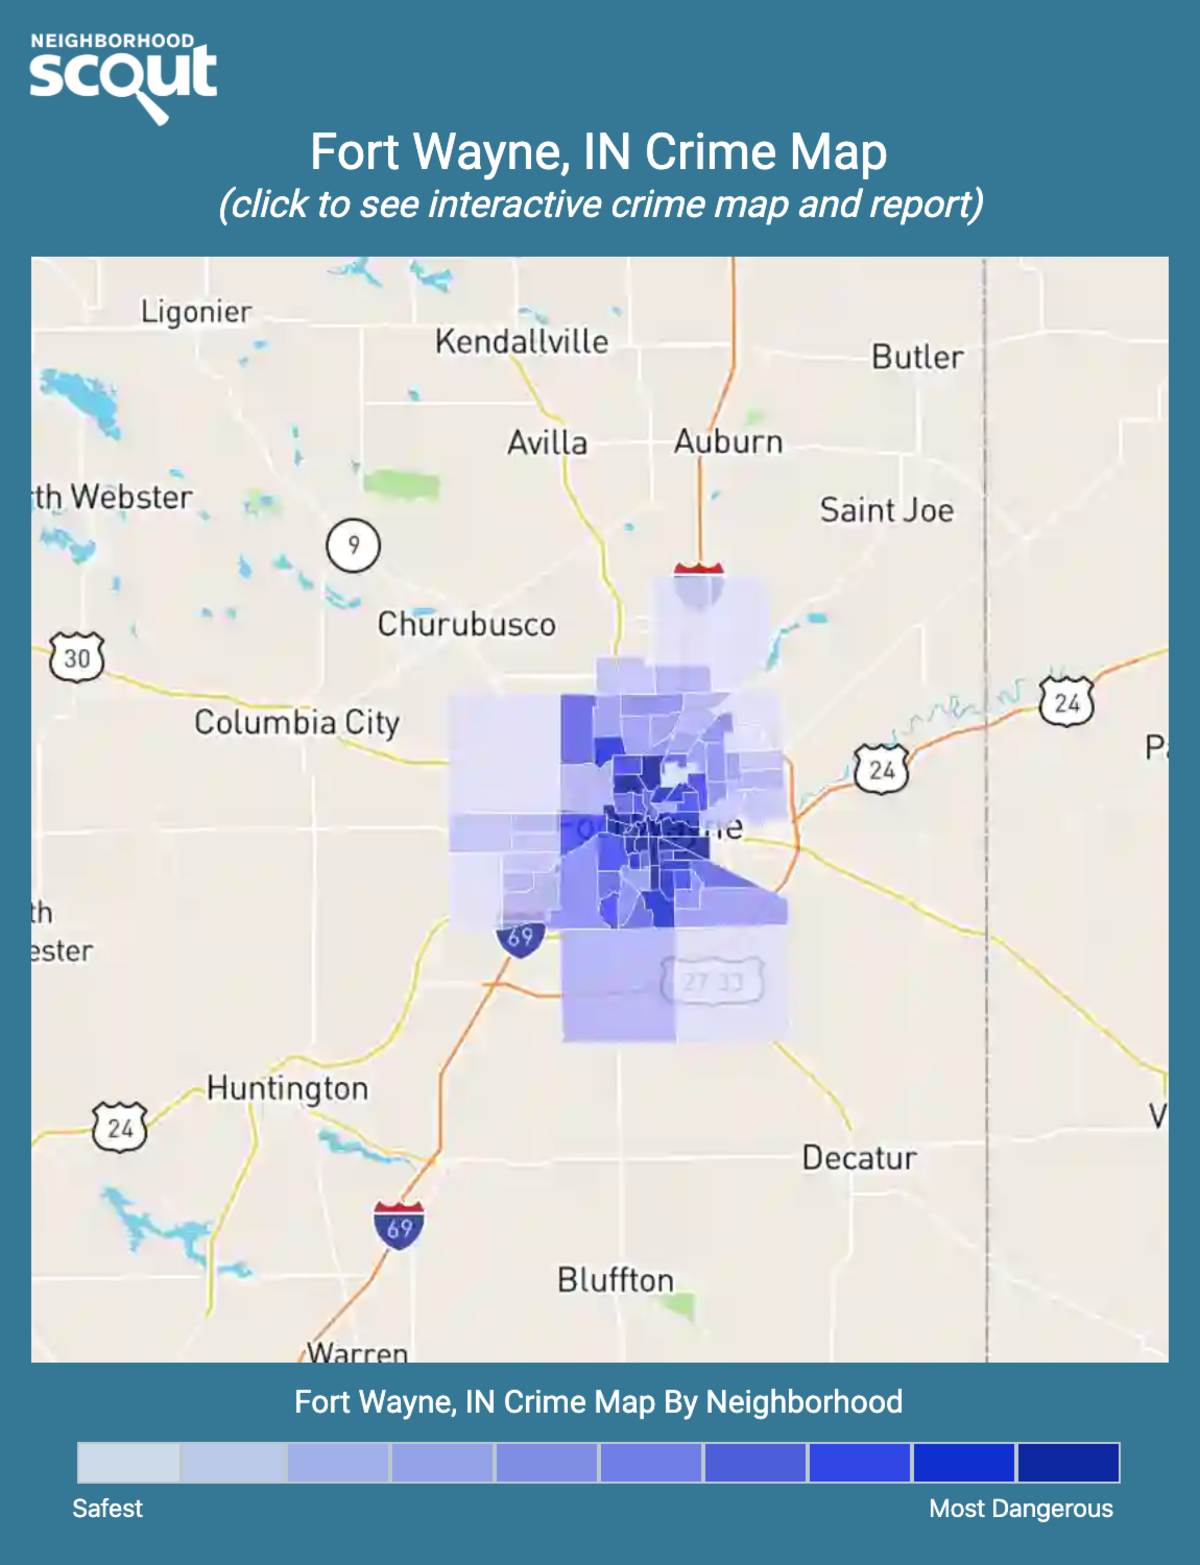 Fort Wayne, Indiana crime map